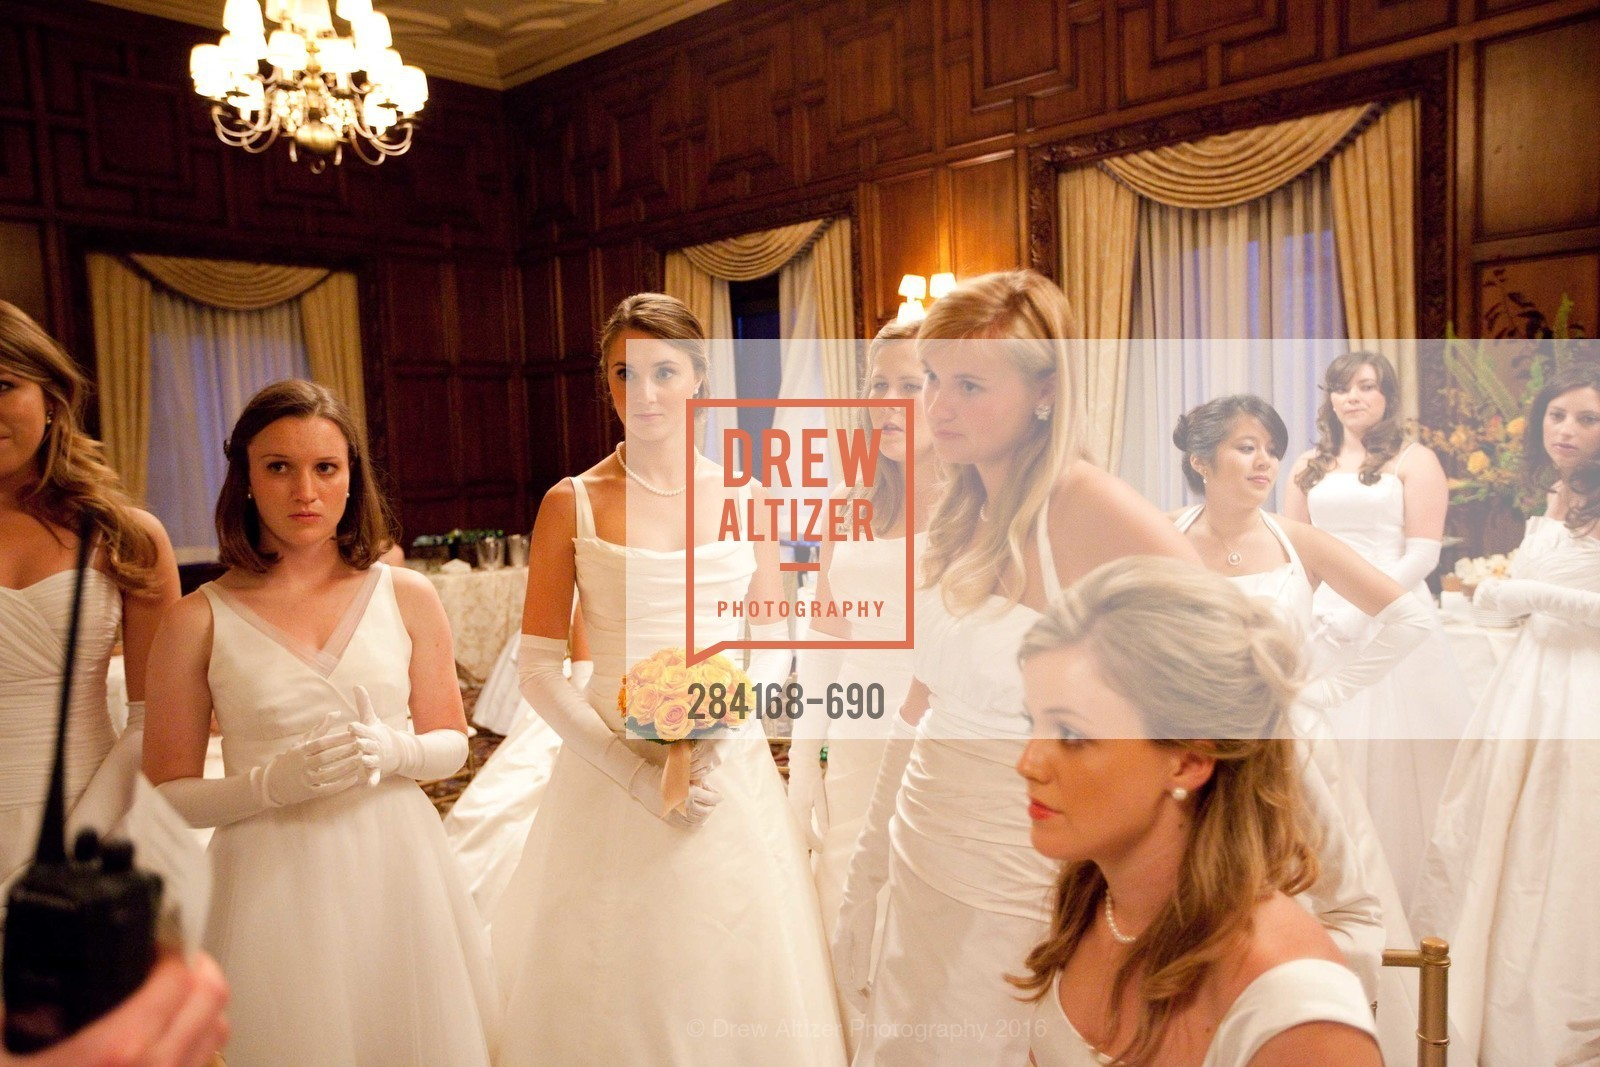 Victoria Student, Eloise Horn, Sarah Bedford, Kelly Gillfillan, Emma Jesberg, Averell Edmondson, 2009 Debutante Ball, Unknown, July 4th, 2008,Drew Altizer, Drew Altizer Photography, full-service agency, private events, San Francisco photographer, photographer california